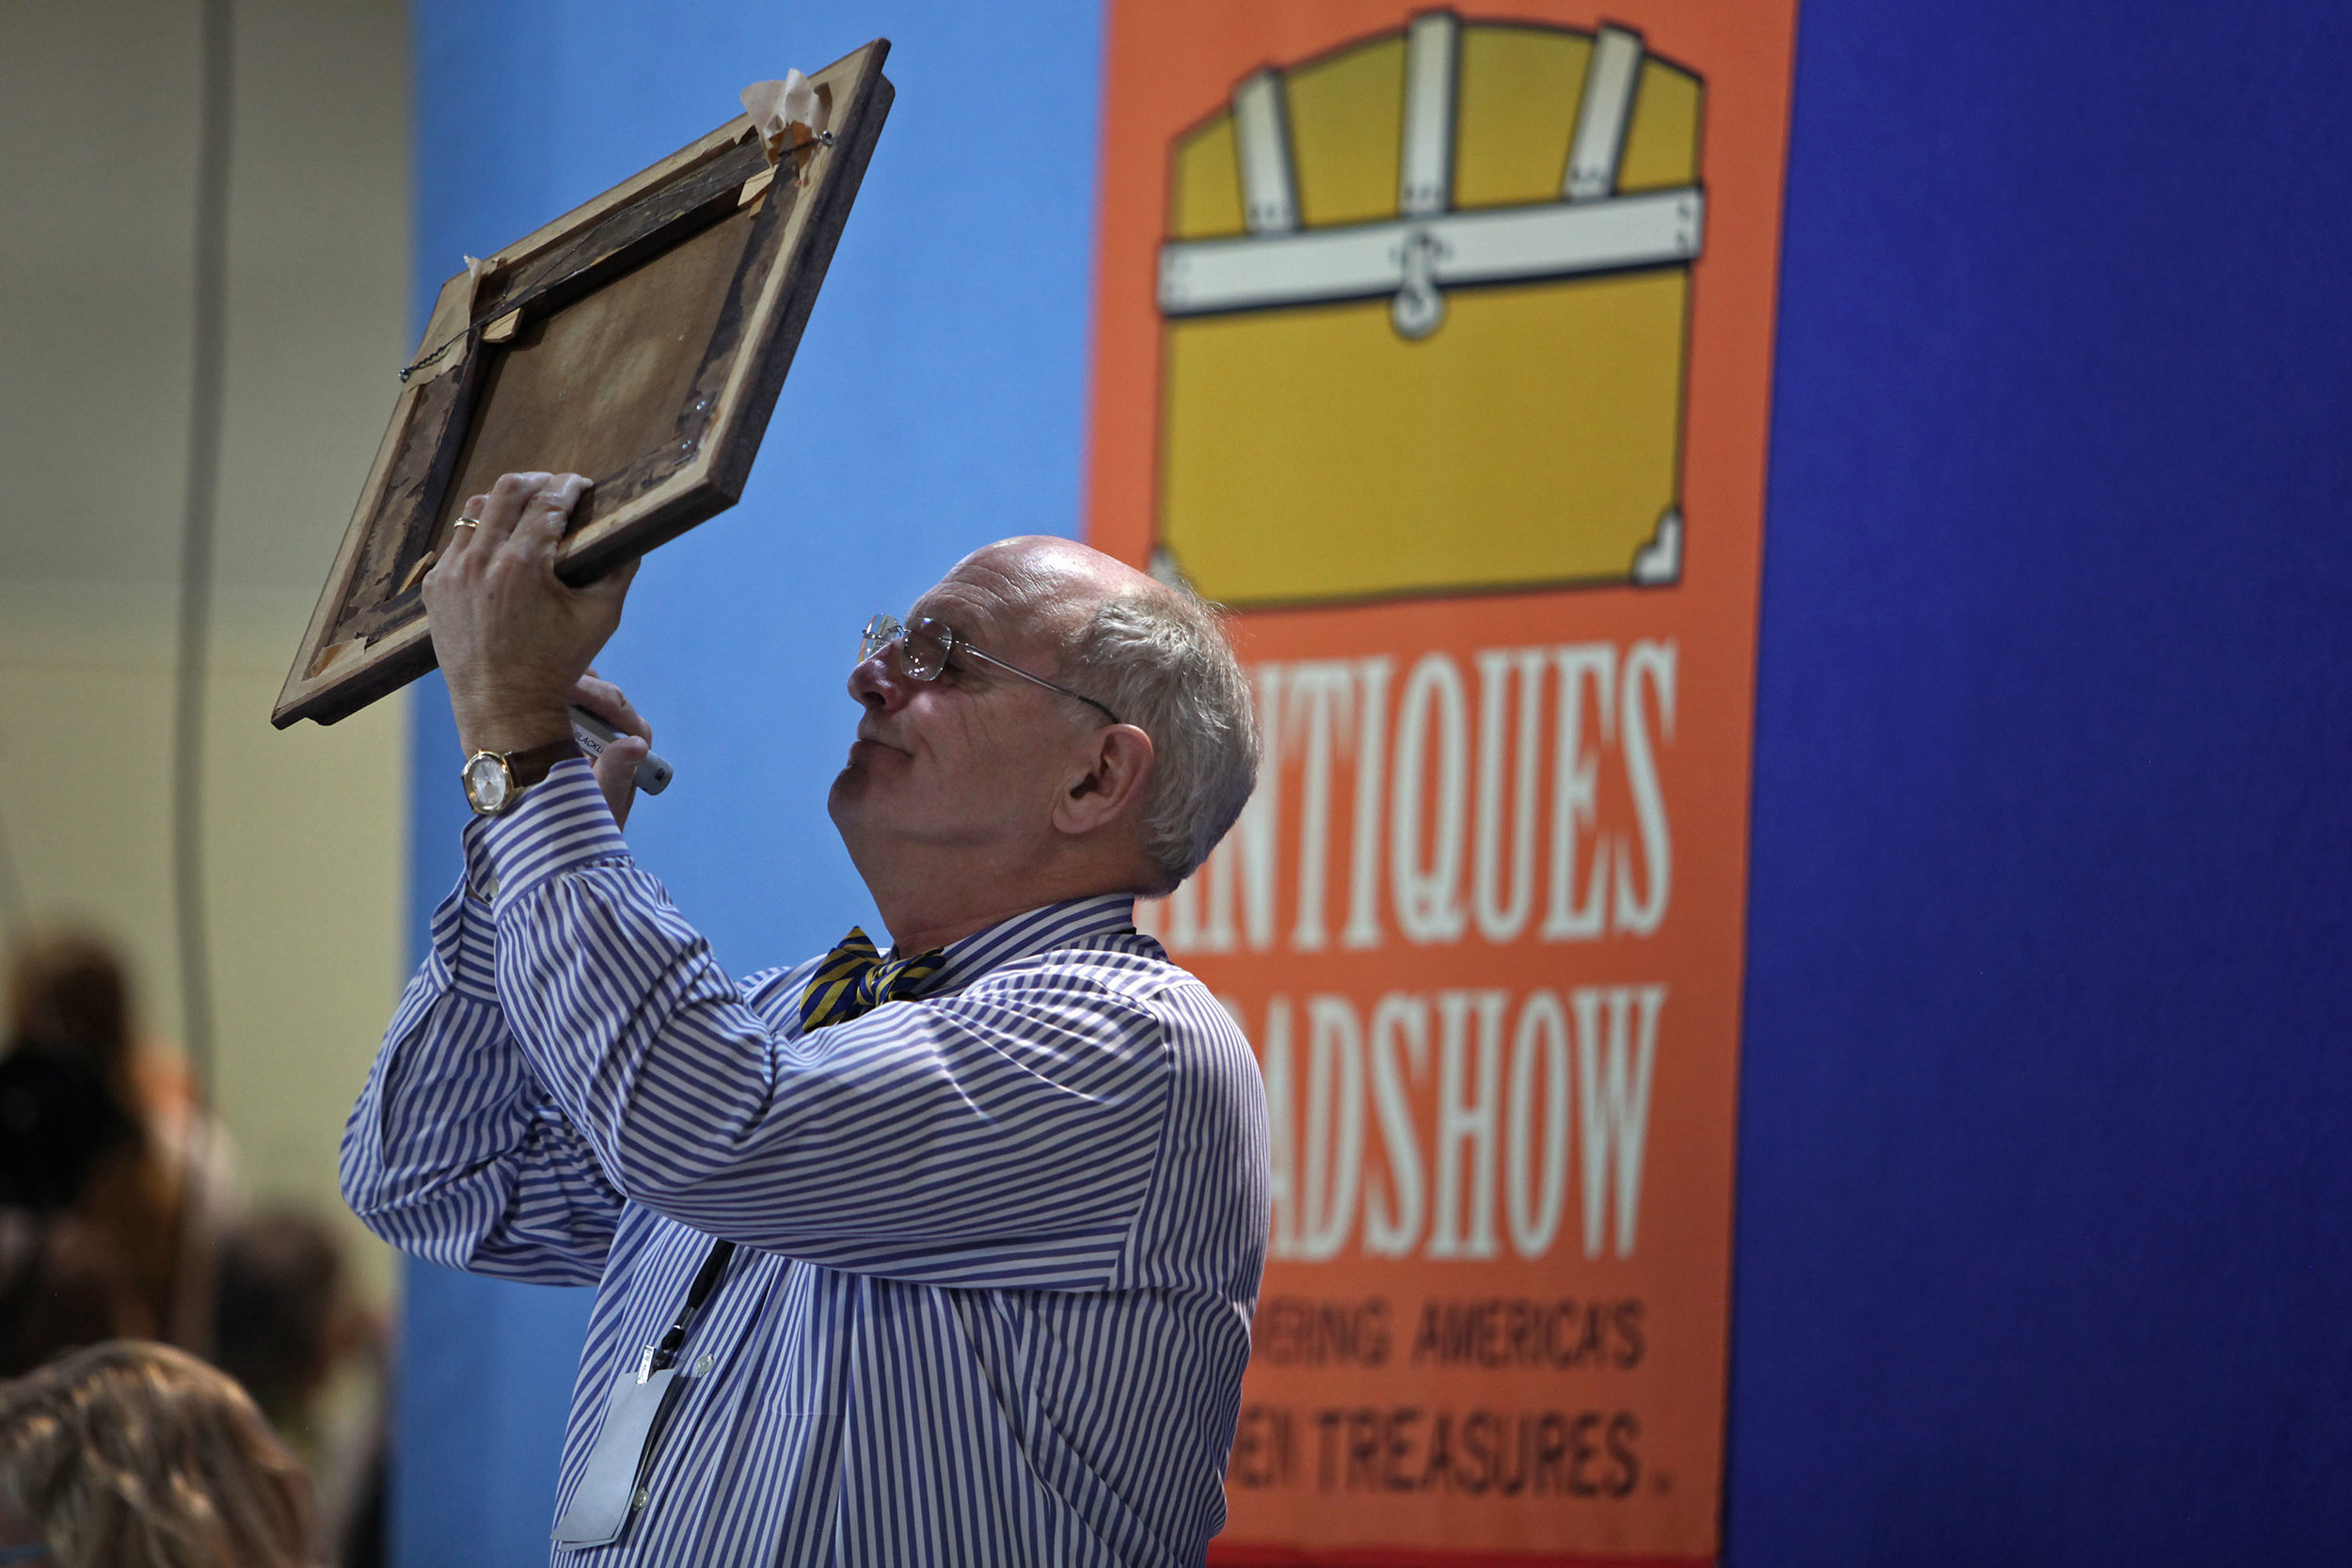 Appraiser Peter Fairbanks looks at a painting with UV light to see if the signature was added to the painting later at the Antiques Roadshow at the Albuquerque Convention Center, July 19, 2014, in Albuquerque NM. (Morgan Petroski/Journal)